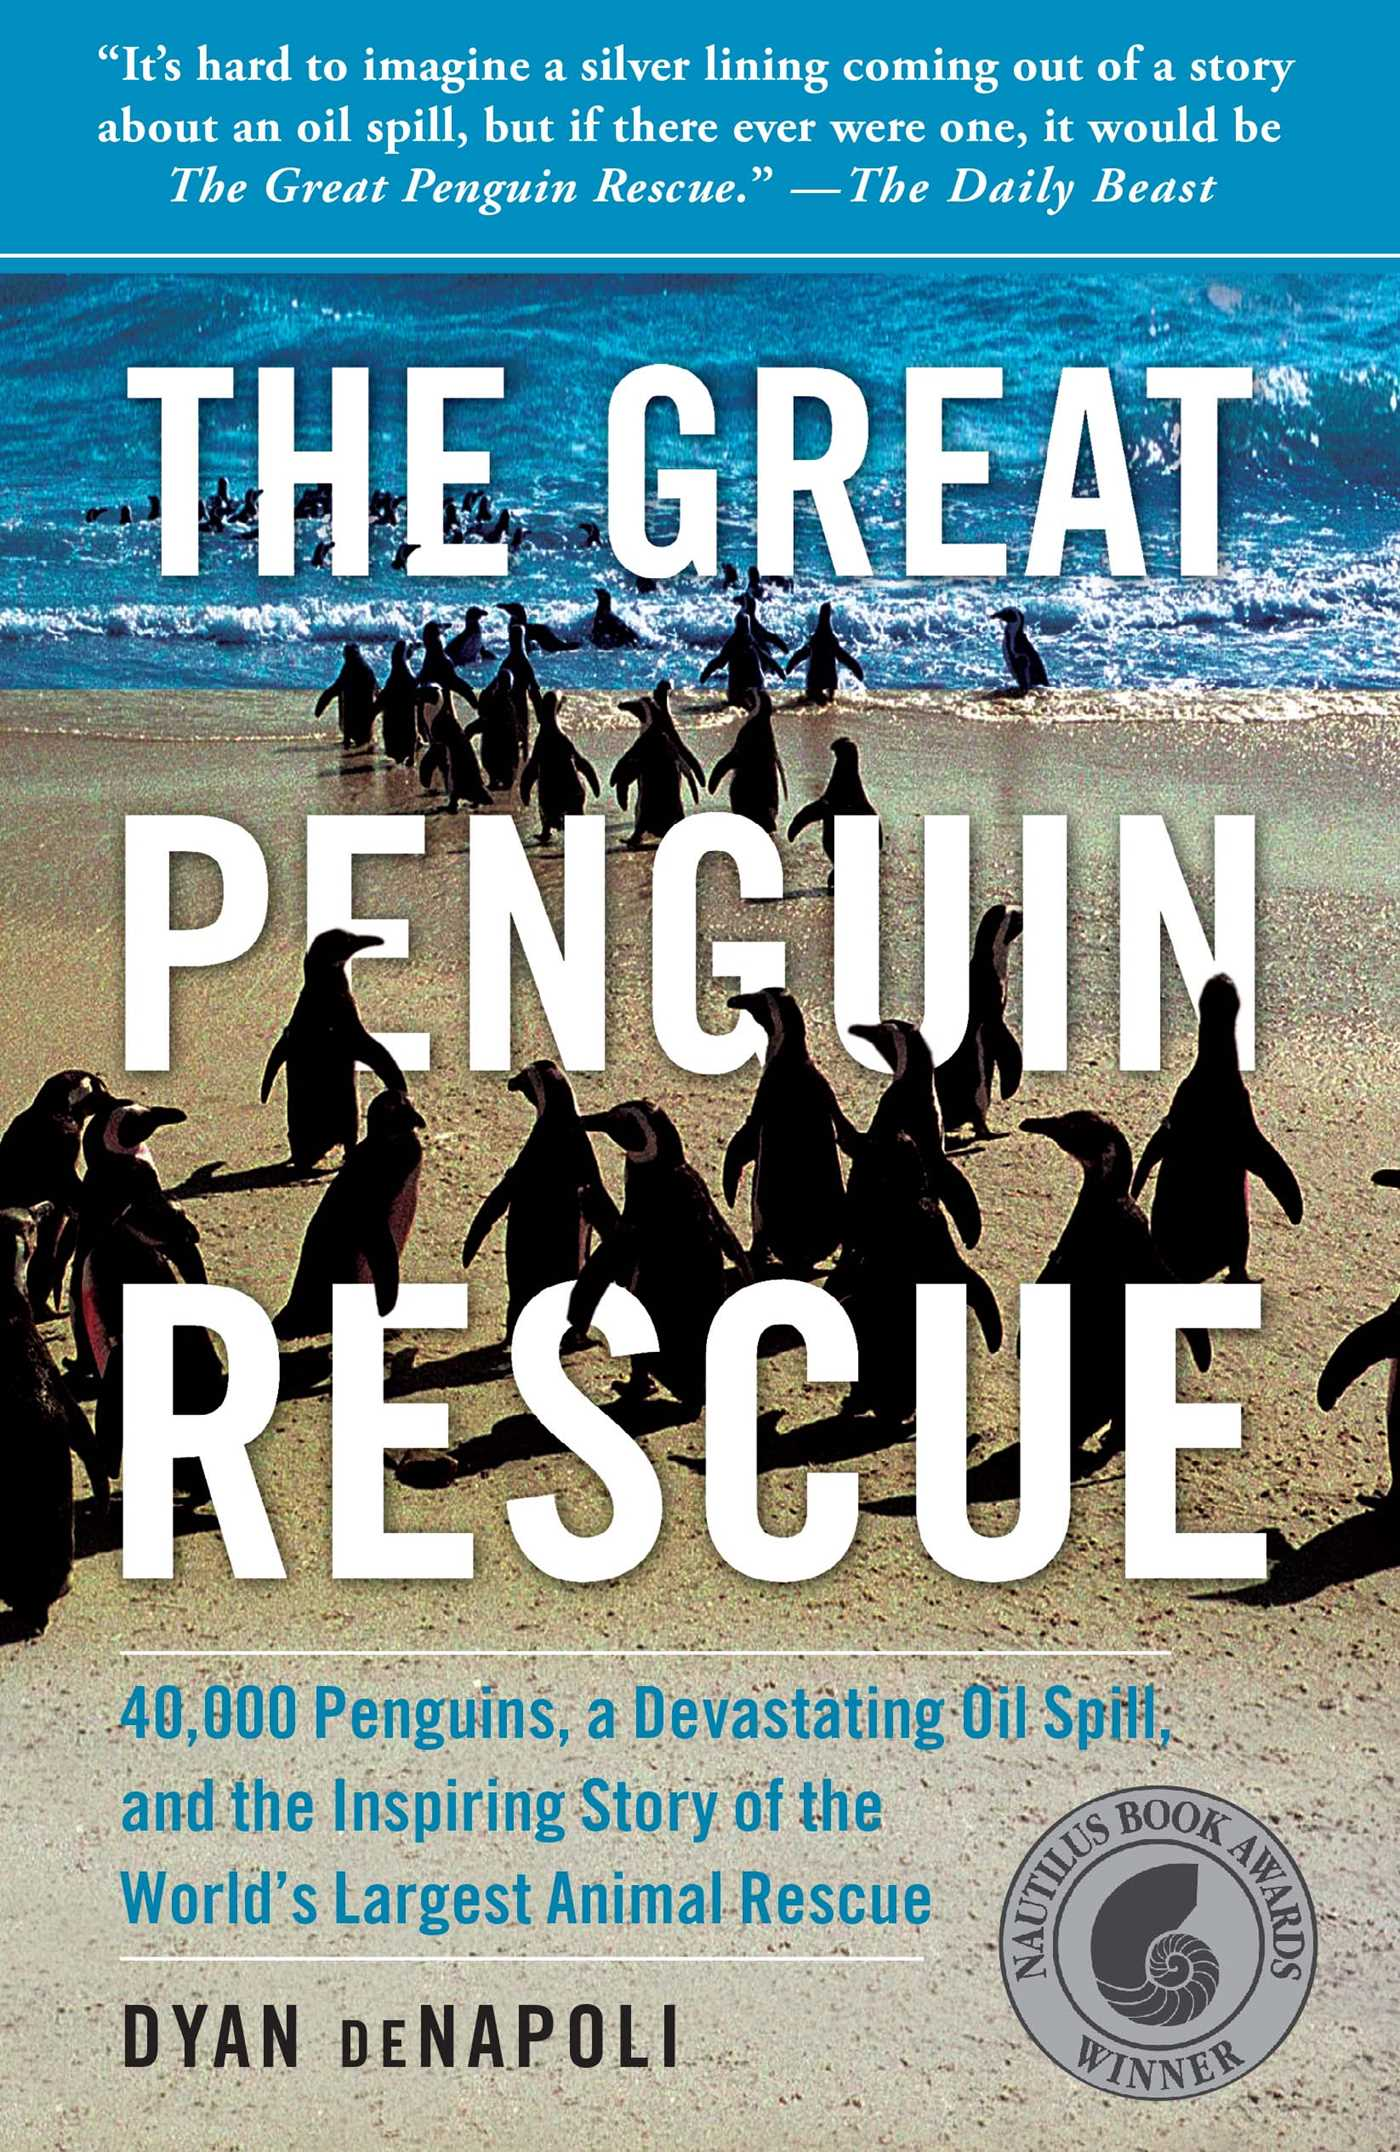 The-great-penguin-rescue-9781439154861_hr